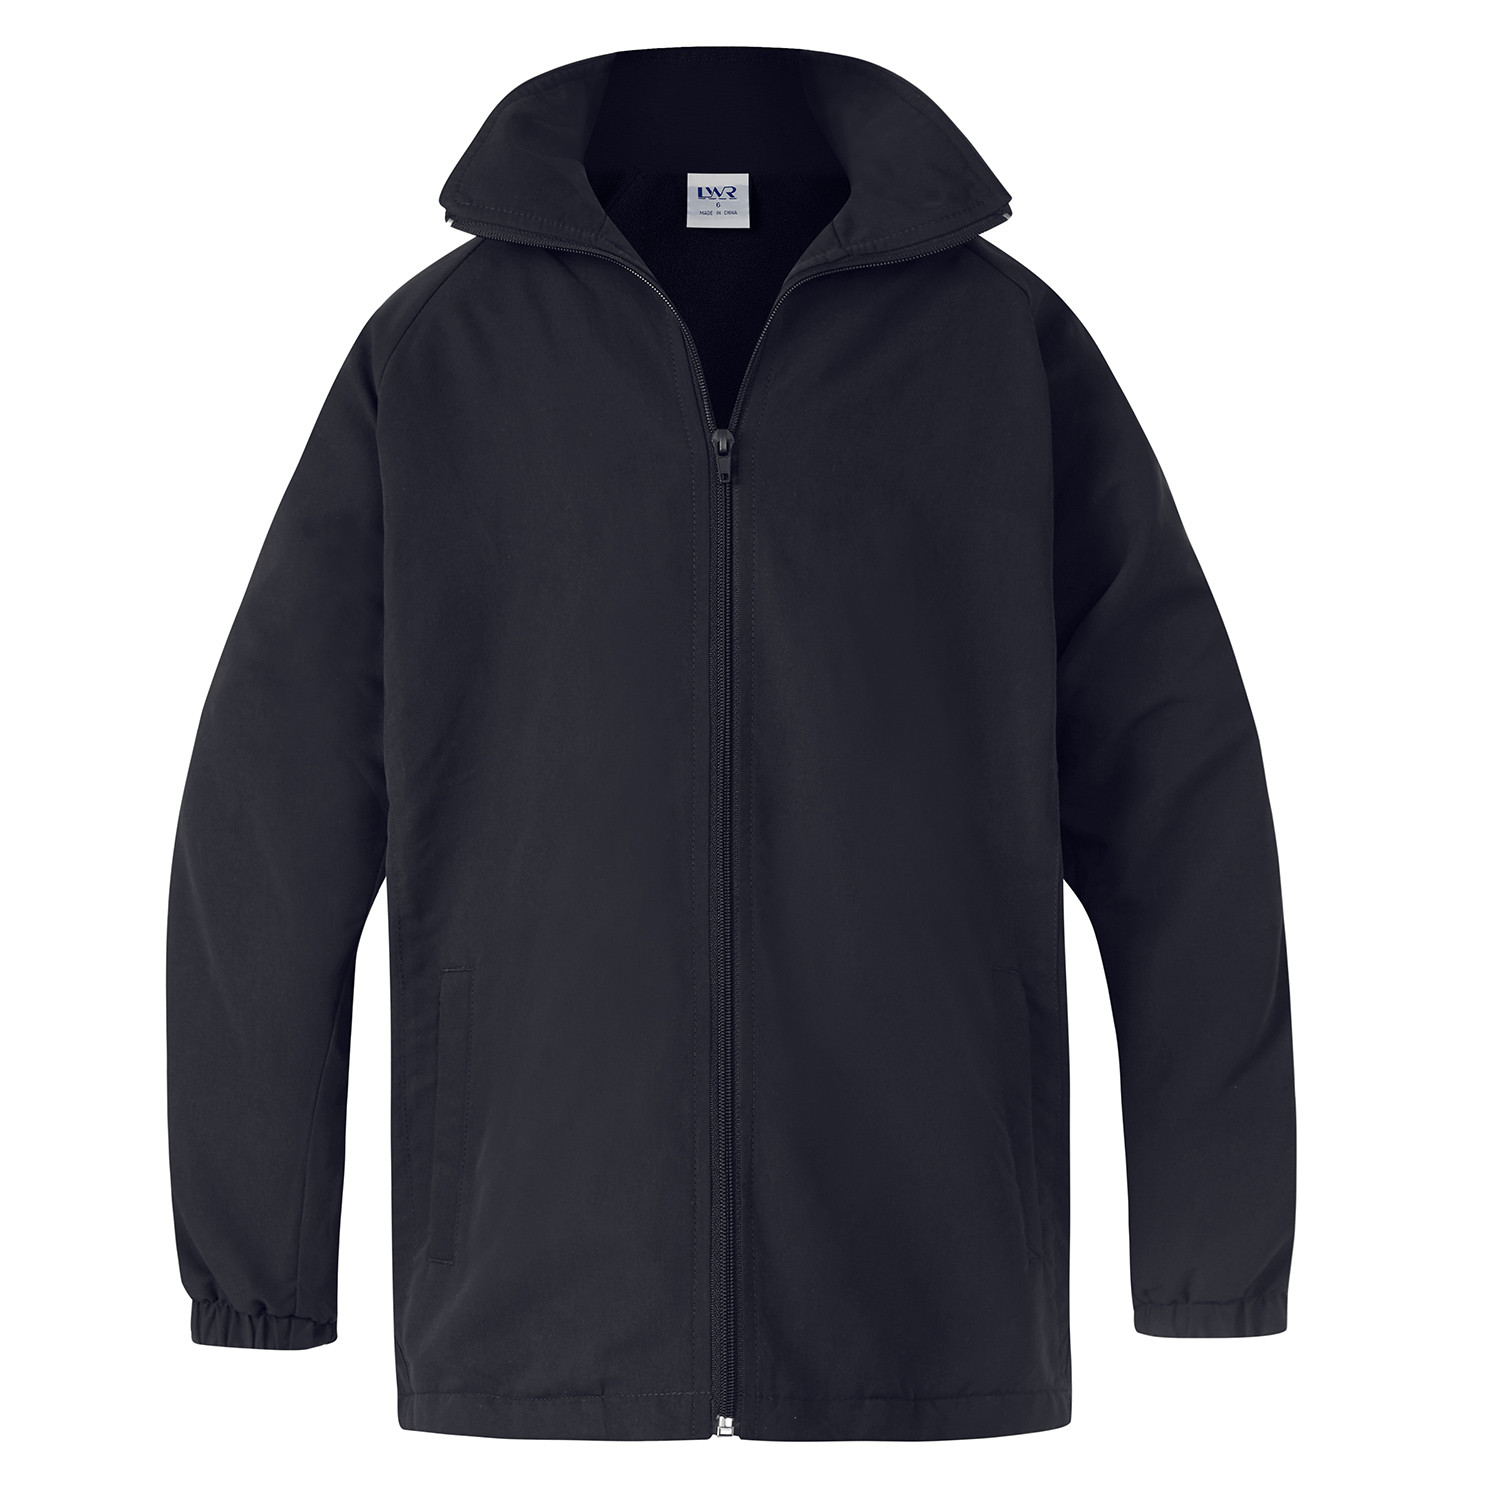 Tebbutt Polar Fleece Lined Microfibre Jacket